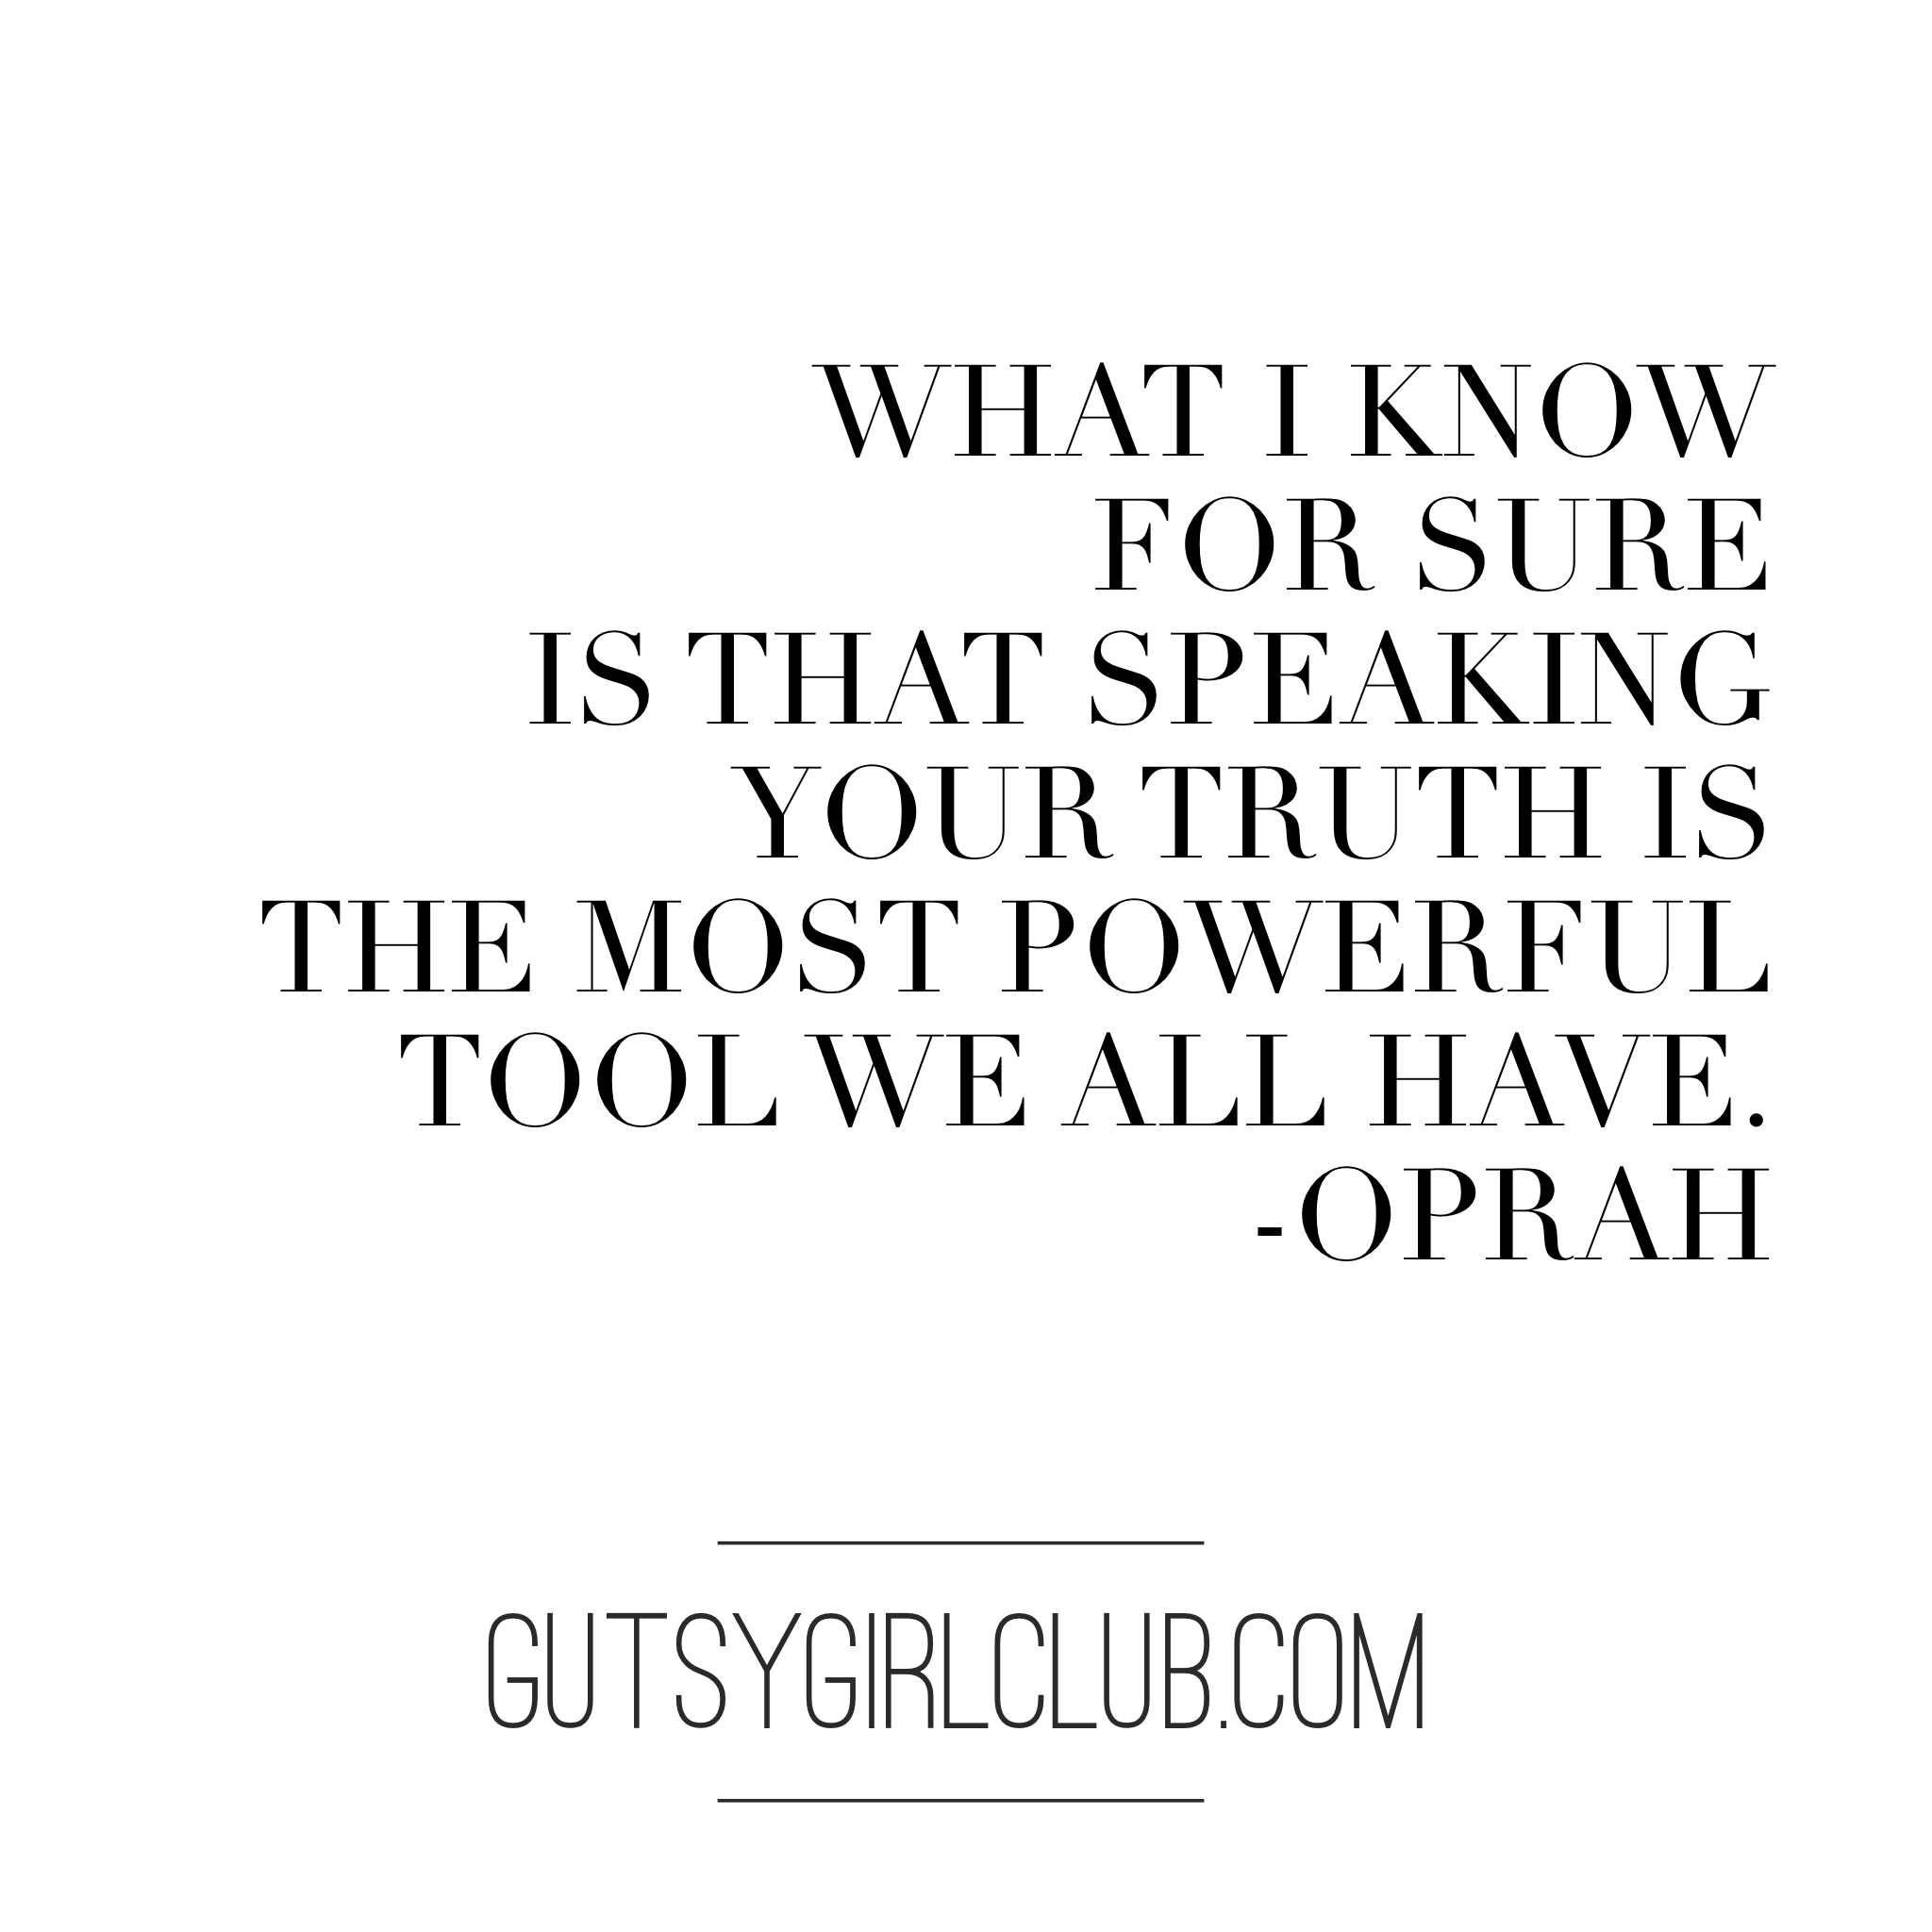 what-i-know-for-sure-speaking-your-truth-oprah-gutsgirlclub.com.PNG